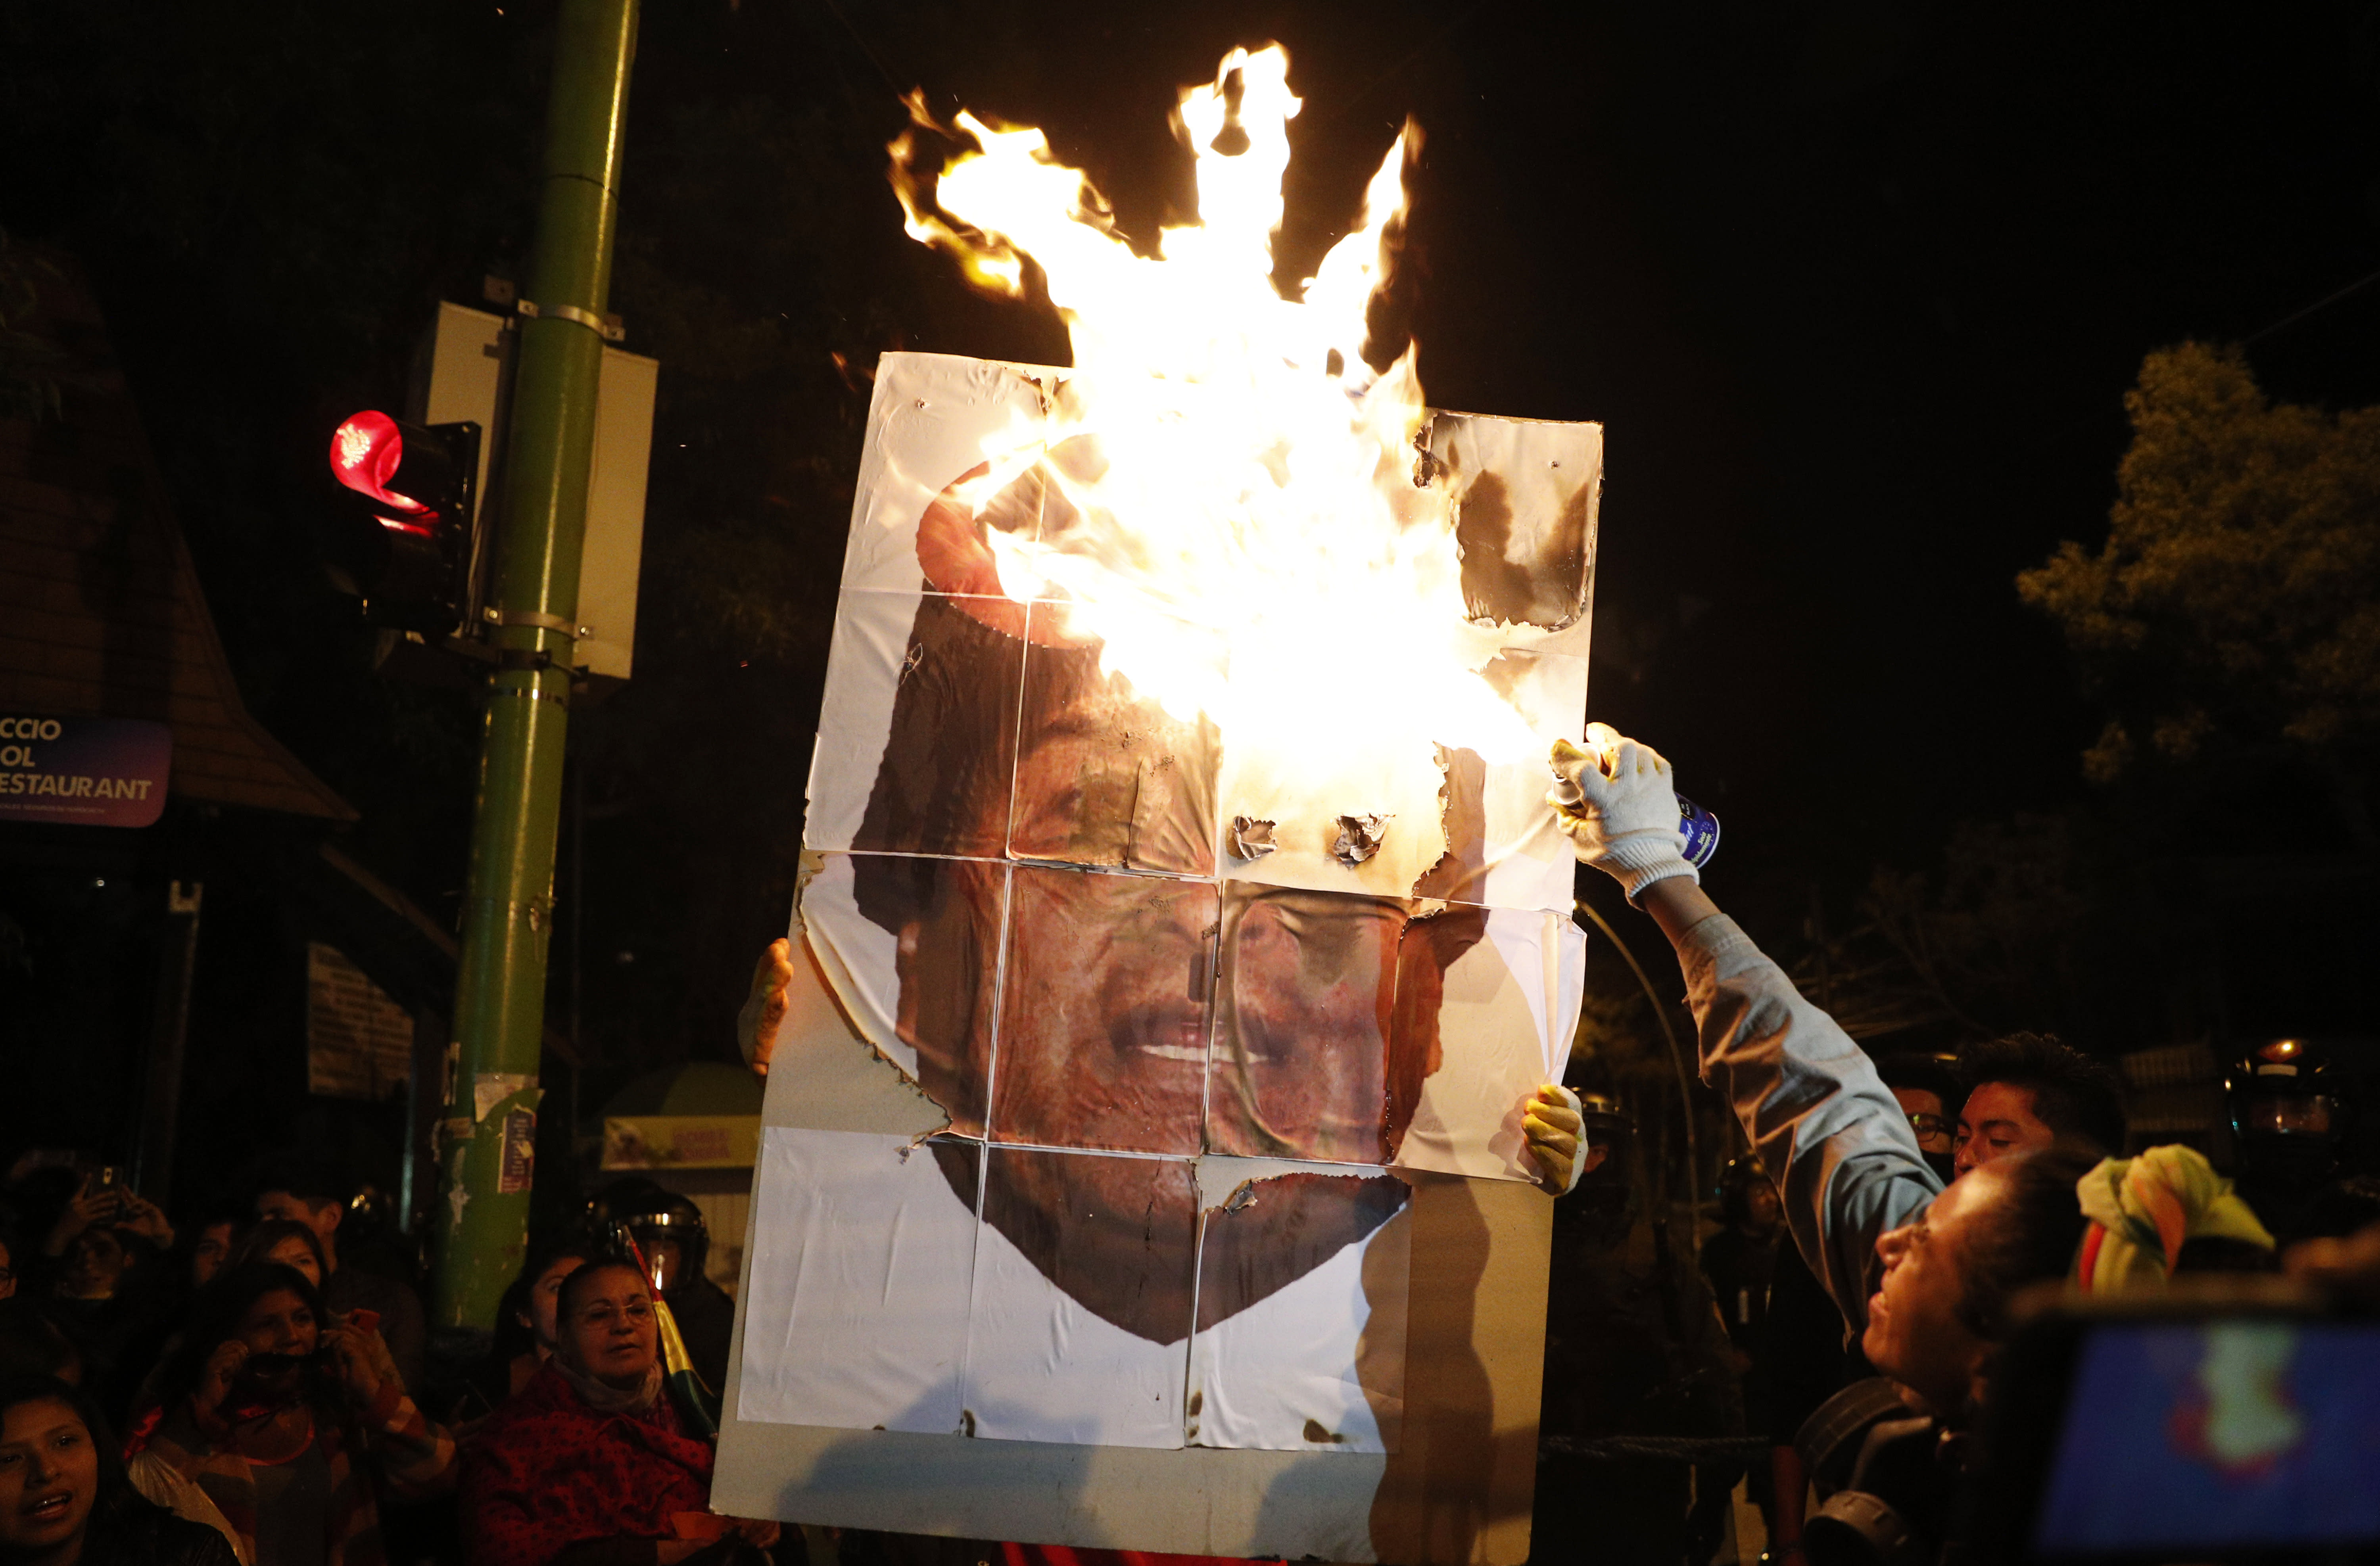 Anti-government protesters burn a picture President Evo Morales during a march demanding a second round presidential election, in La Paz, Bolivia, Saturday, Oct. 26, 2019. Bolivia's official vote tally was revealed Friday pointing to an outright win for incumbent Evo Morales in a disputed presidential election that has triggered protests and growing international pressure on the Andean nation to hold a runoff ballot. (AP Photo/Juan Karita)